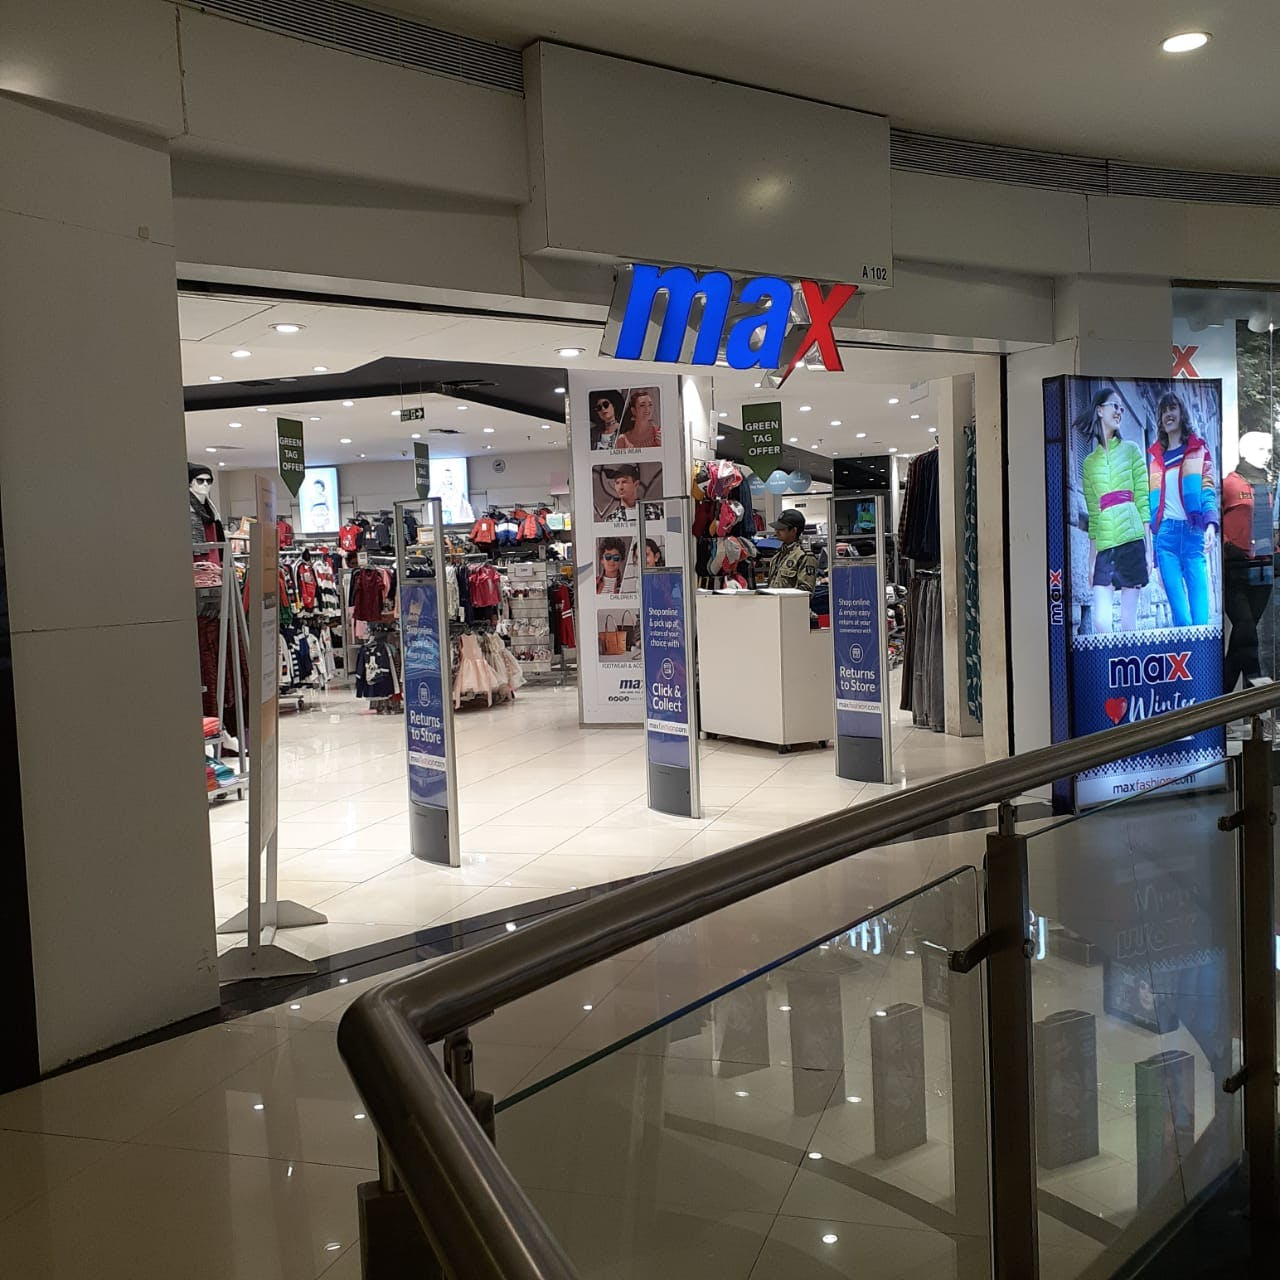 Building,Shopping mall,Retail,Interior design,Door,Outlet store,Machine,Advertising,Airport